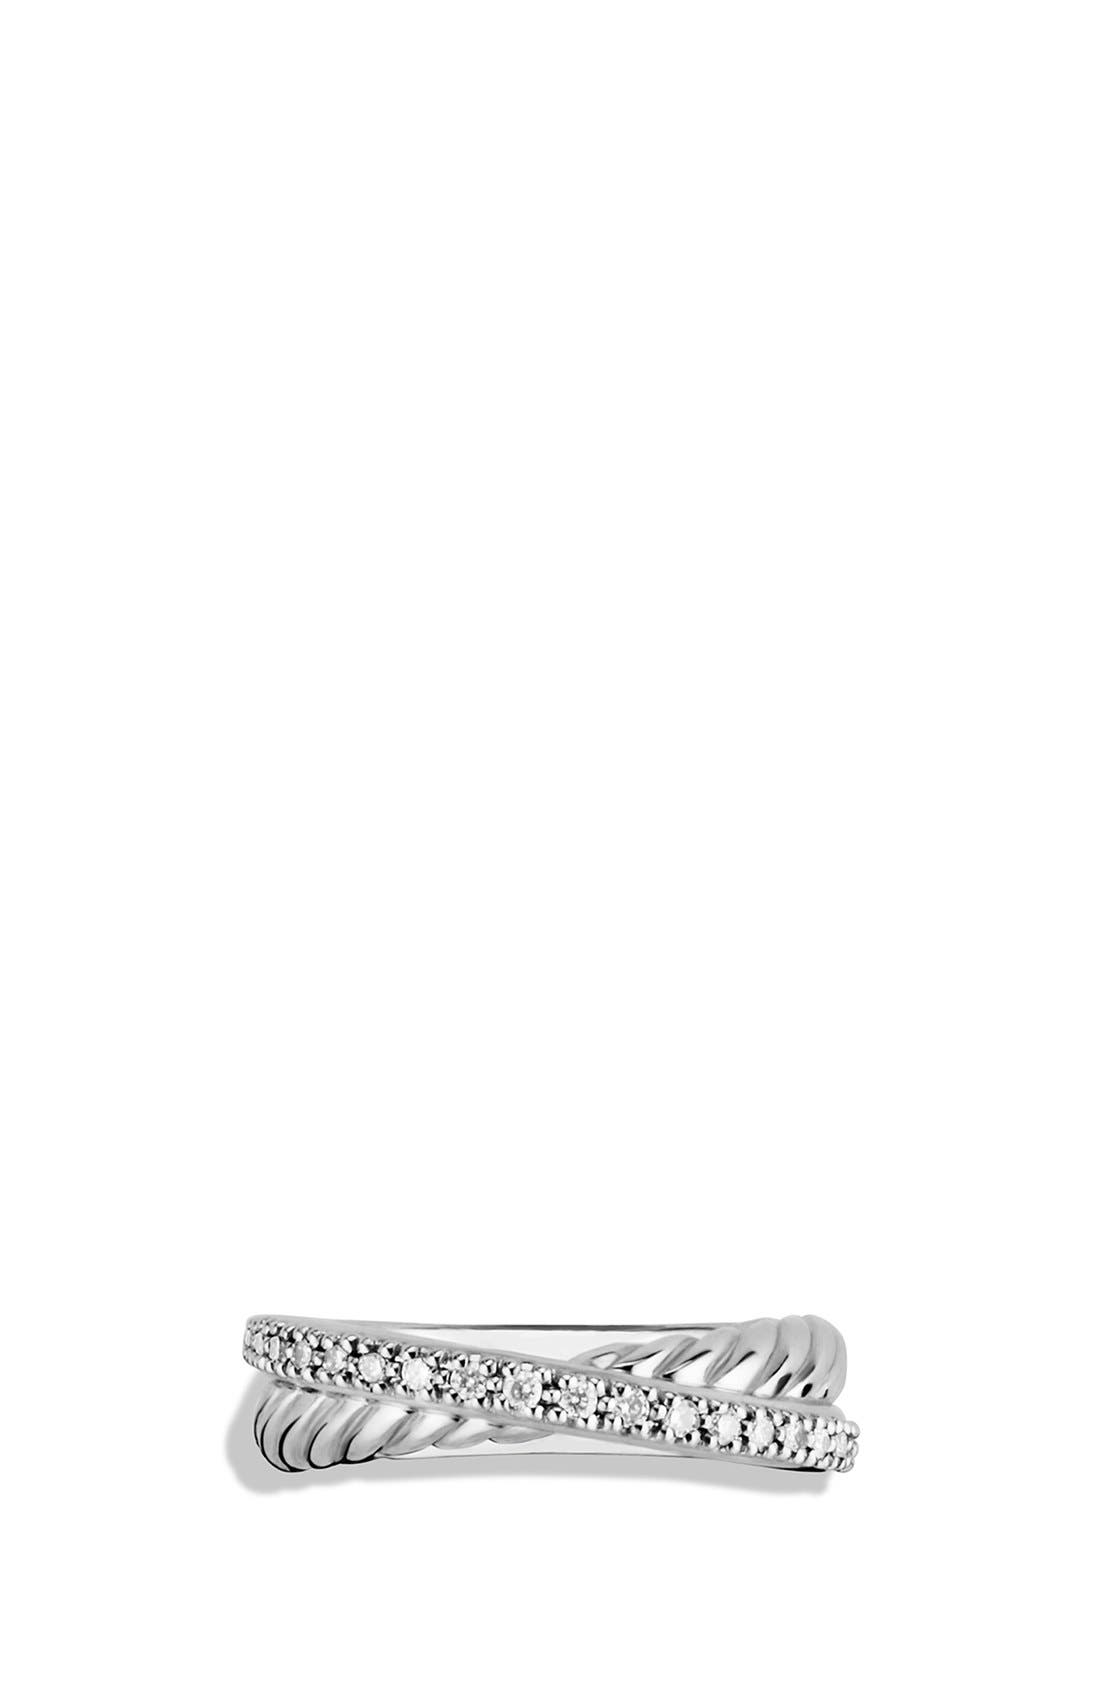 'Crossover' Ring with Diamonds,                             Alternate thumbnail 2, color,                             SILVER